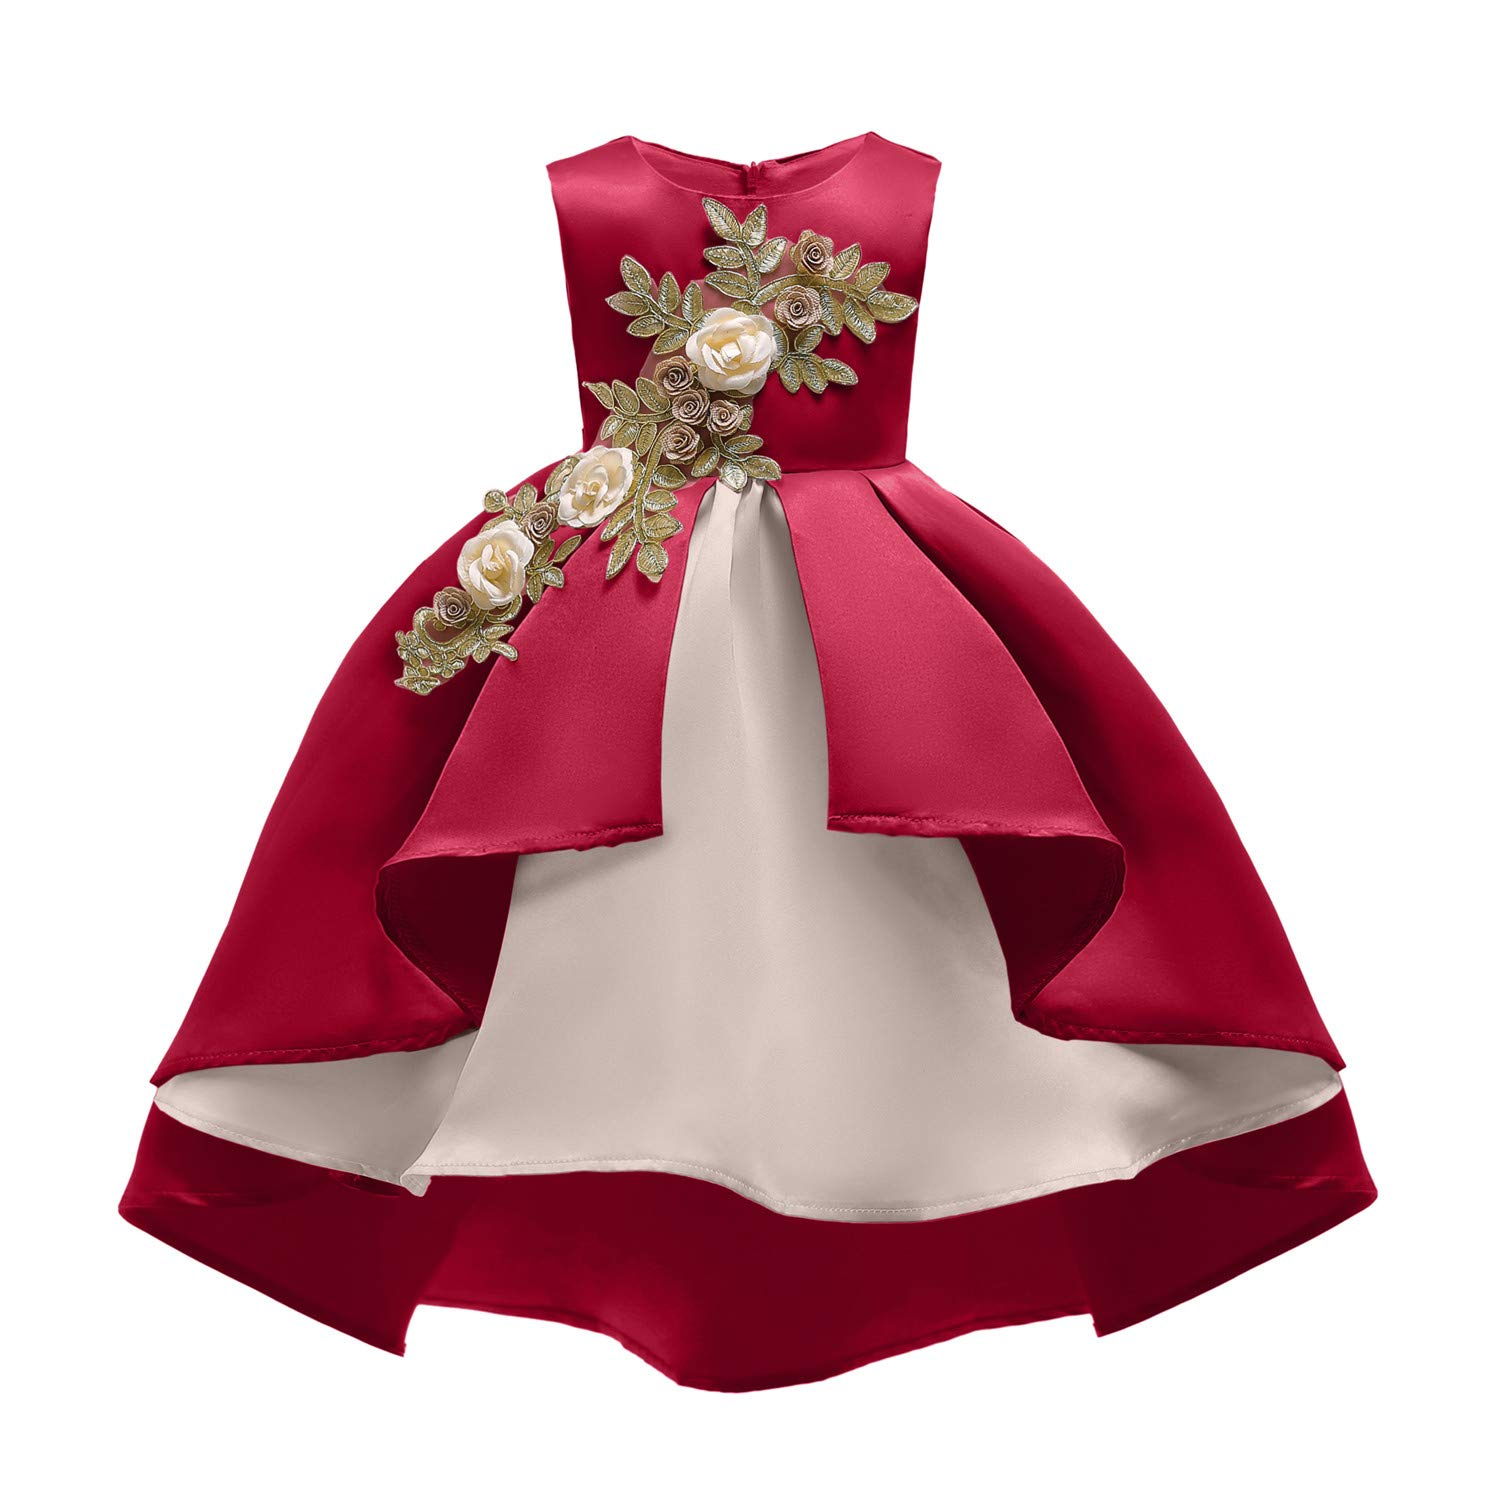 NSSMWTTC Flower Girl Pageant Dress Kids Party Dresses, 2-9 Years